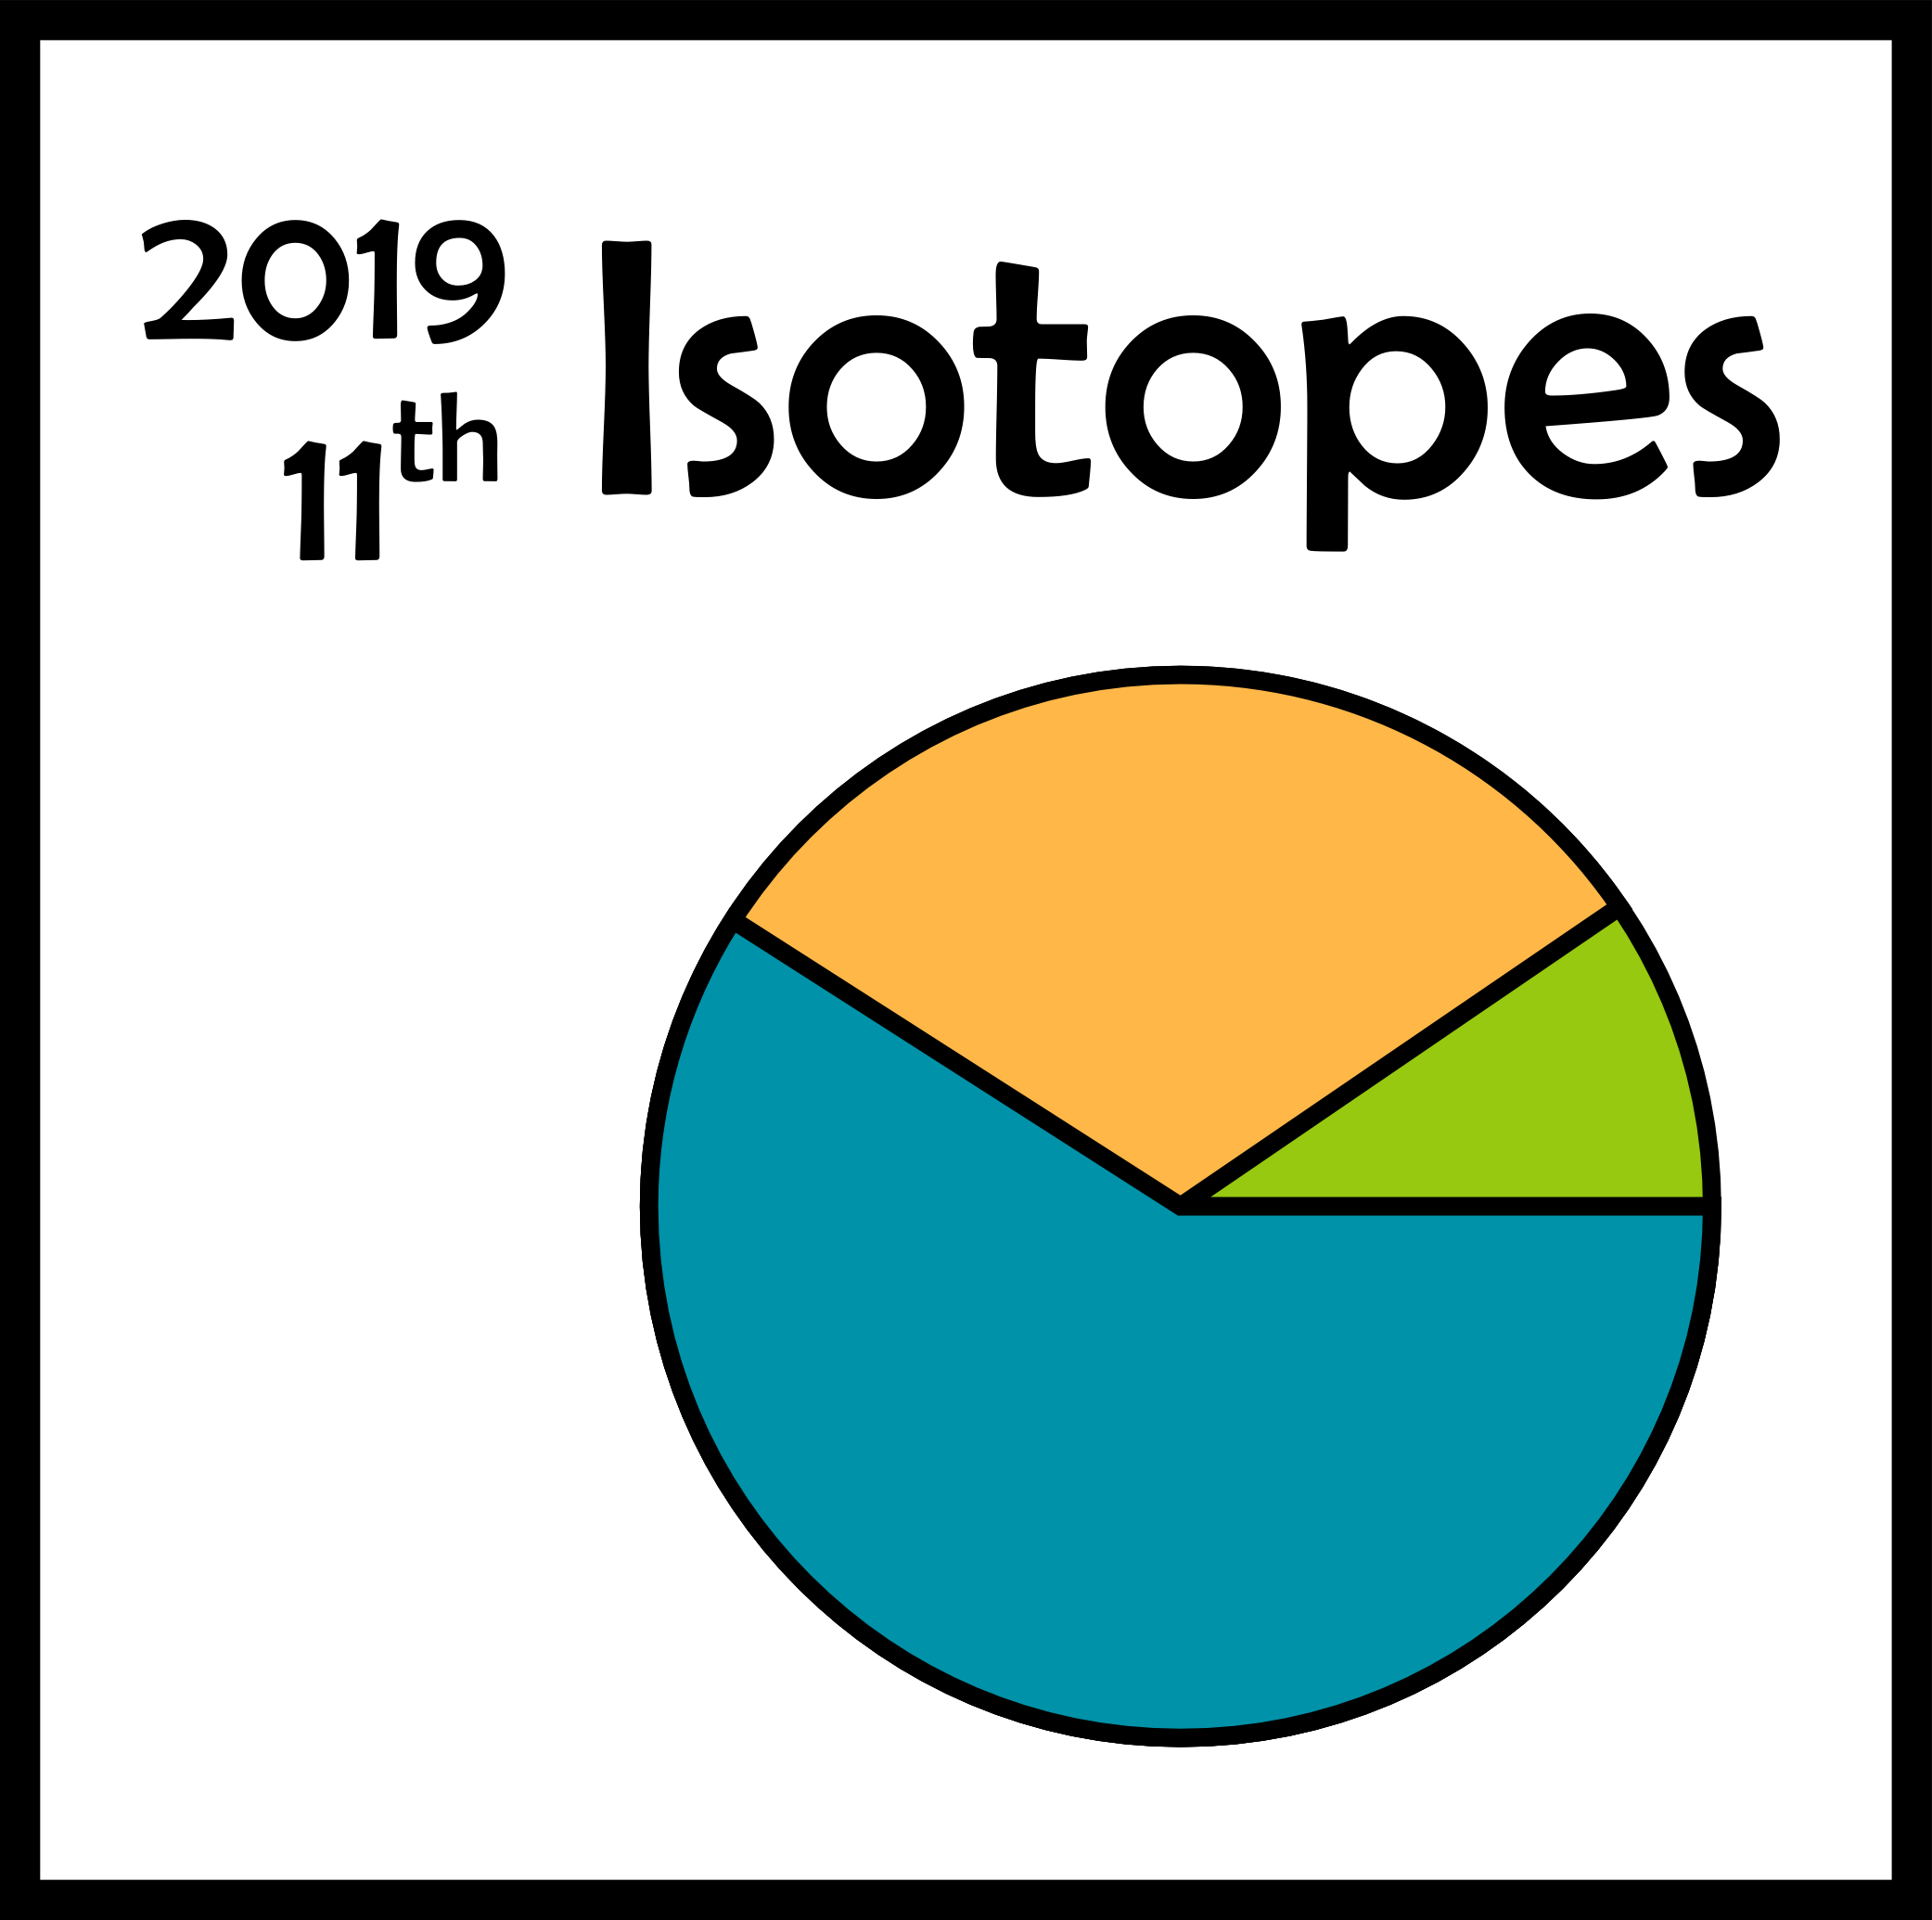 Isotopes 2019